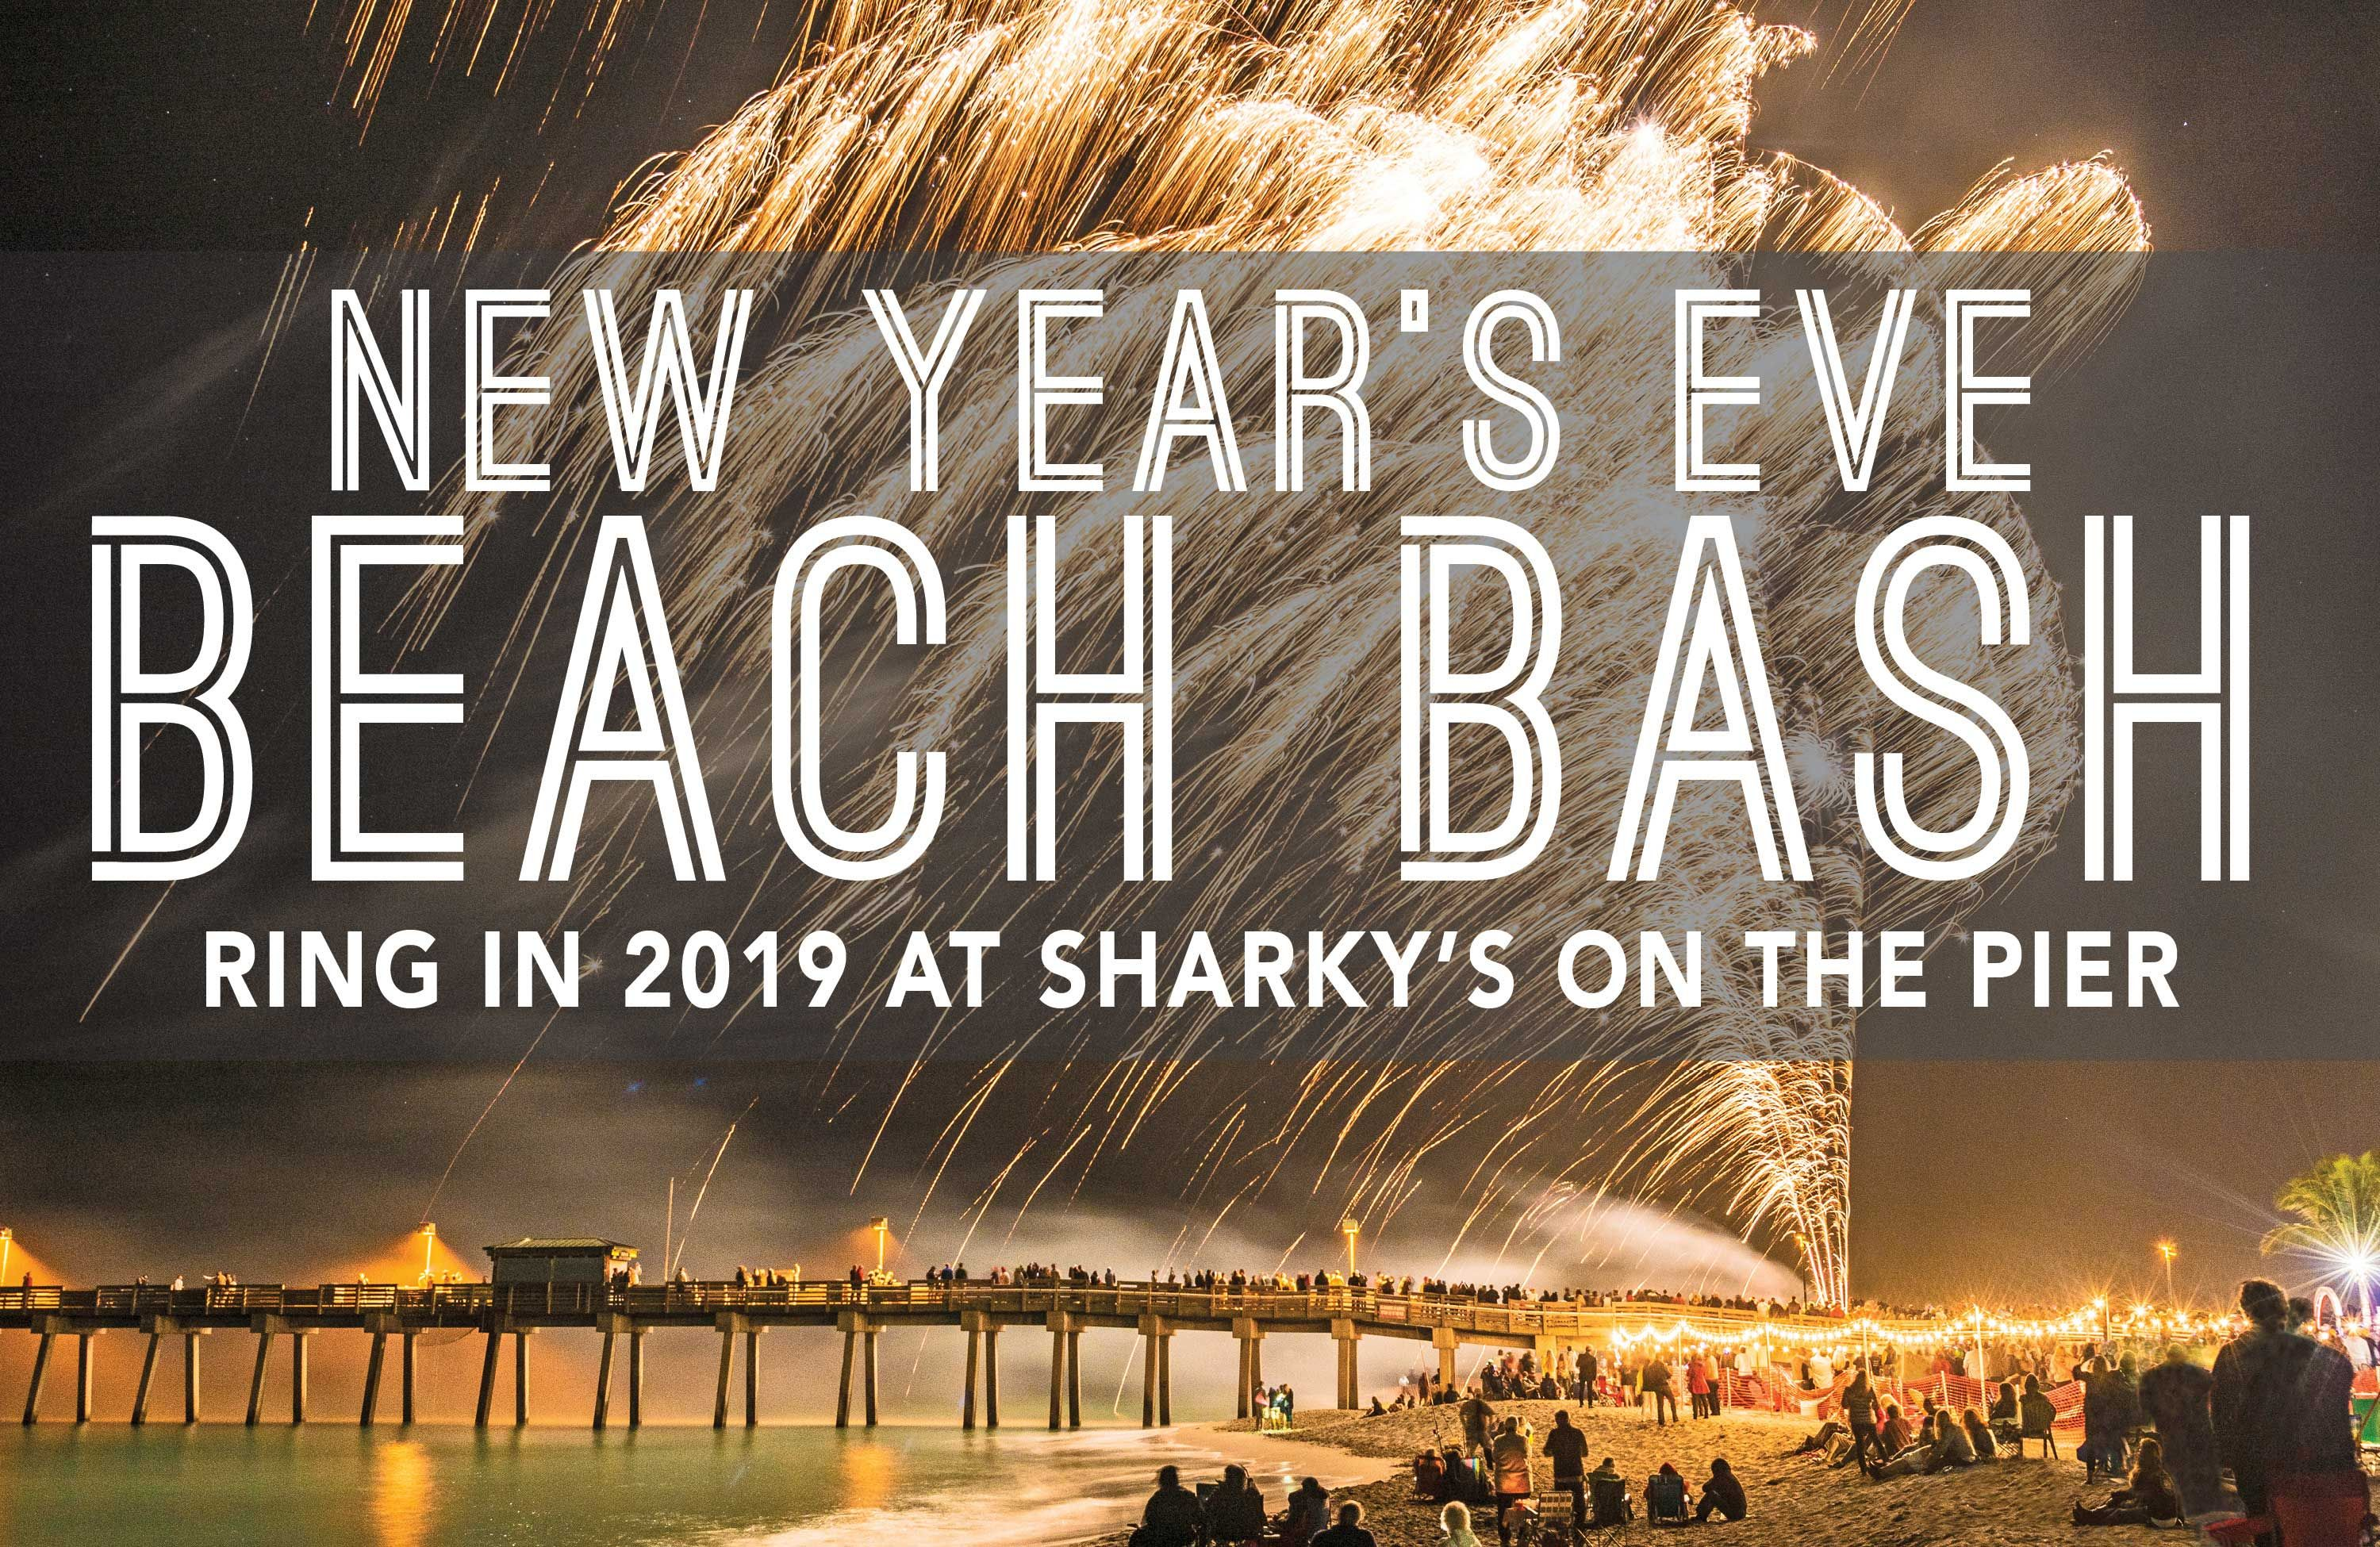 New Years Eve 2019 Web Banner New Years Eve Events Newyear New Year S Eve 2019